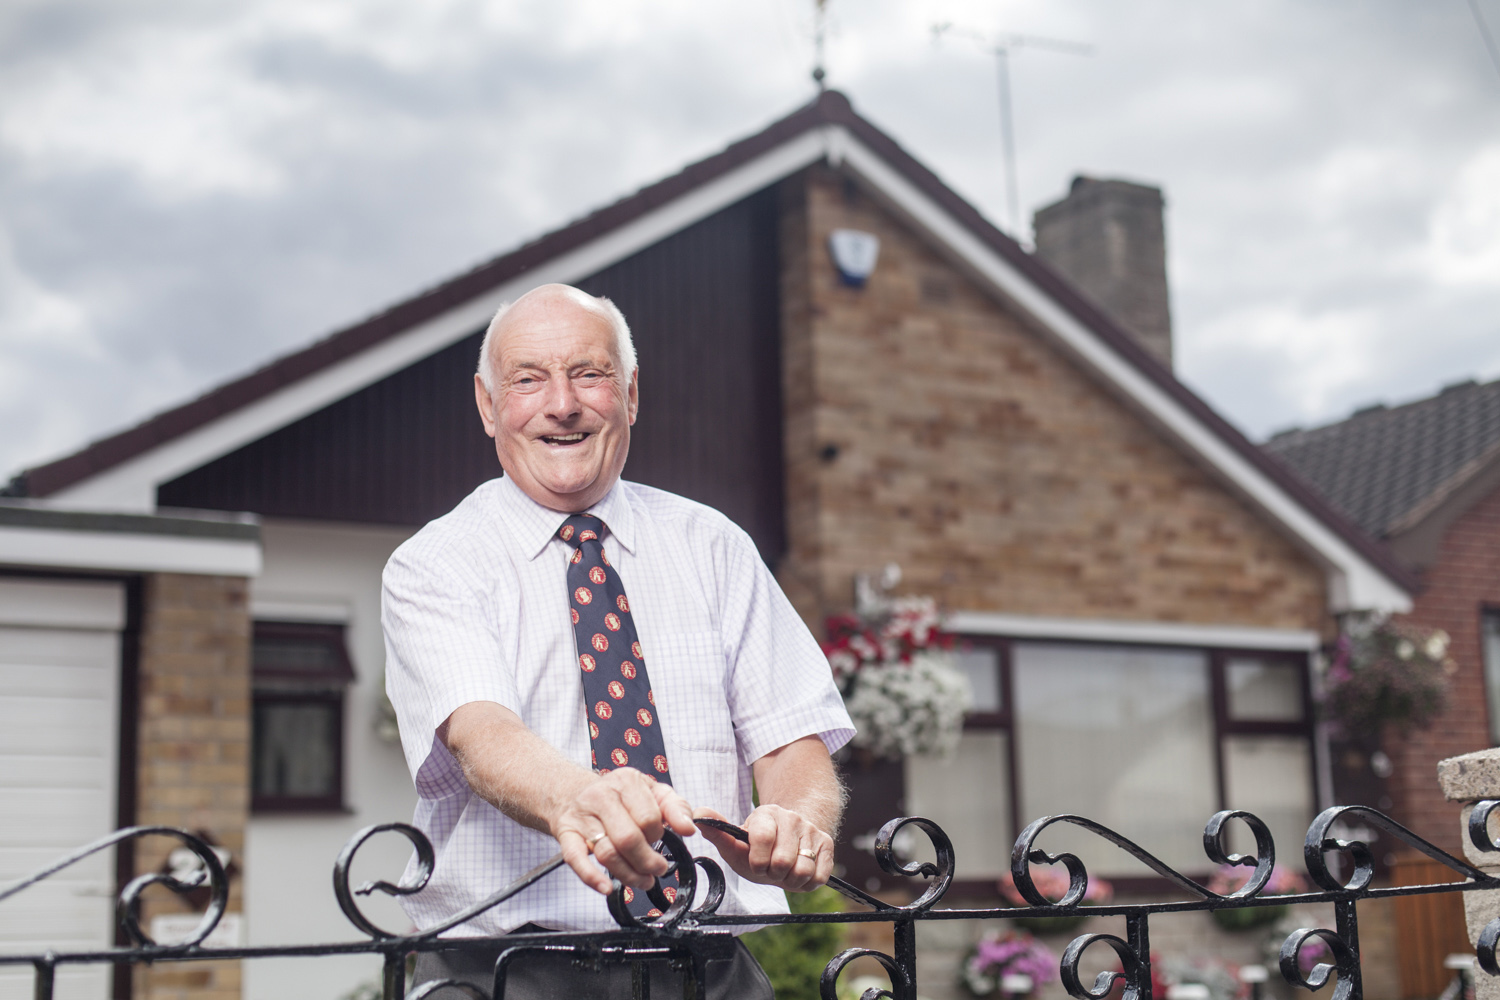 Trevor Jarvis at his home in Skello, Doncaster. 2015